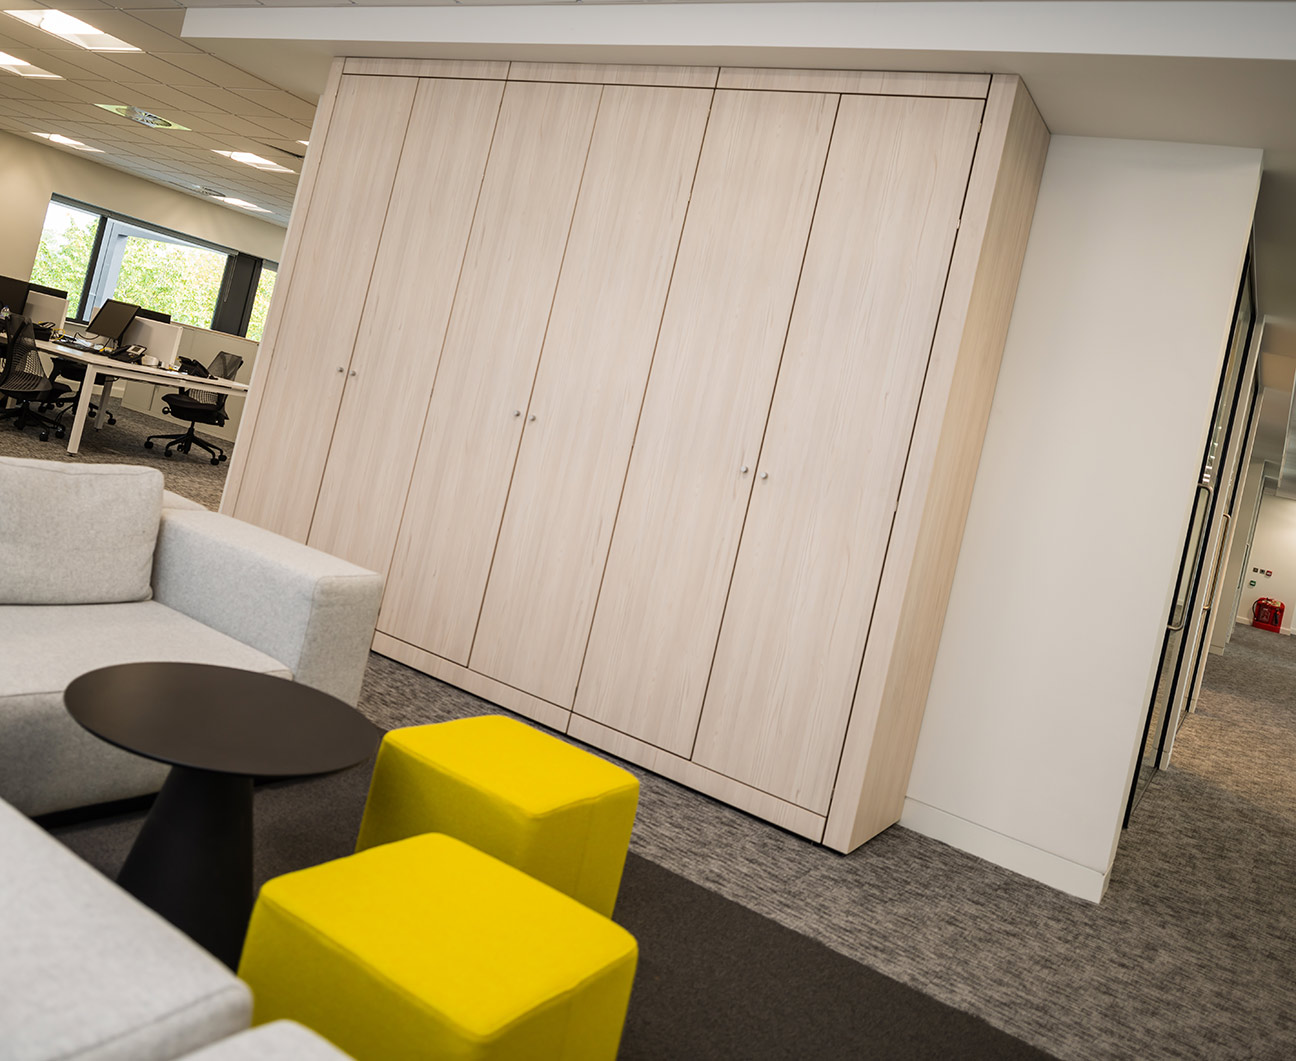 Wall backing wall storage cabinets with Oak doors